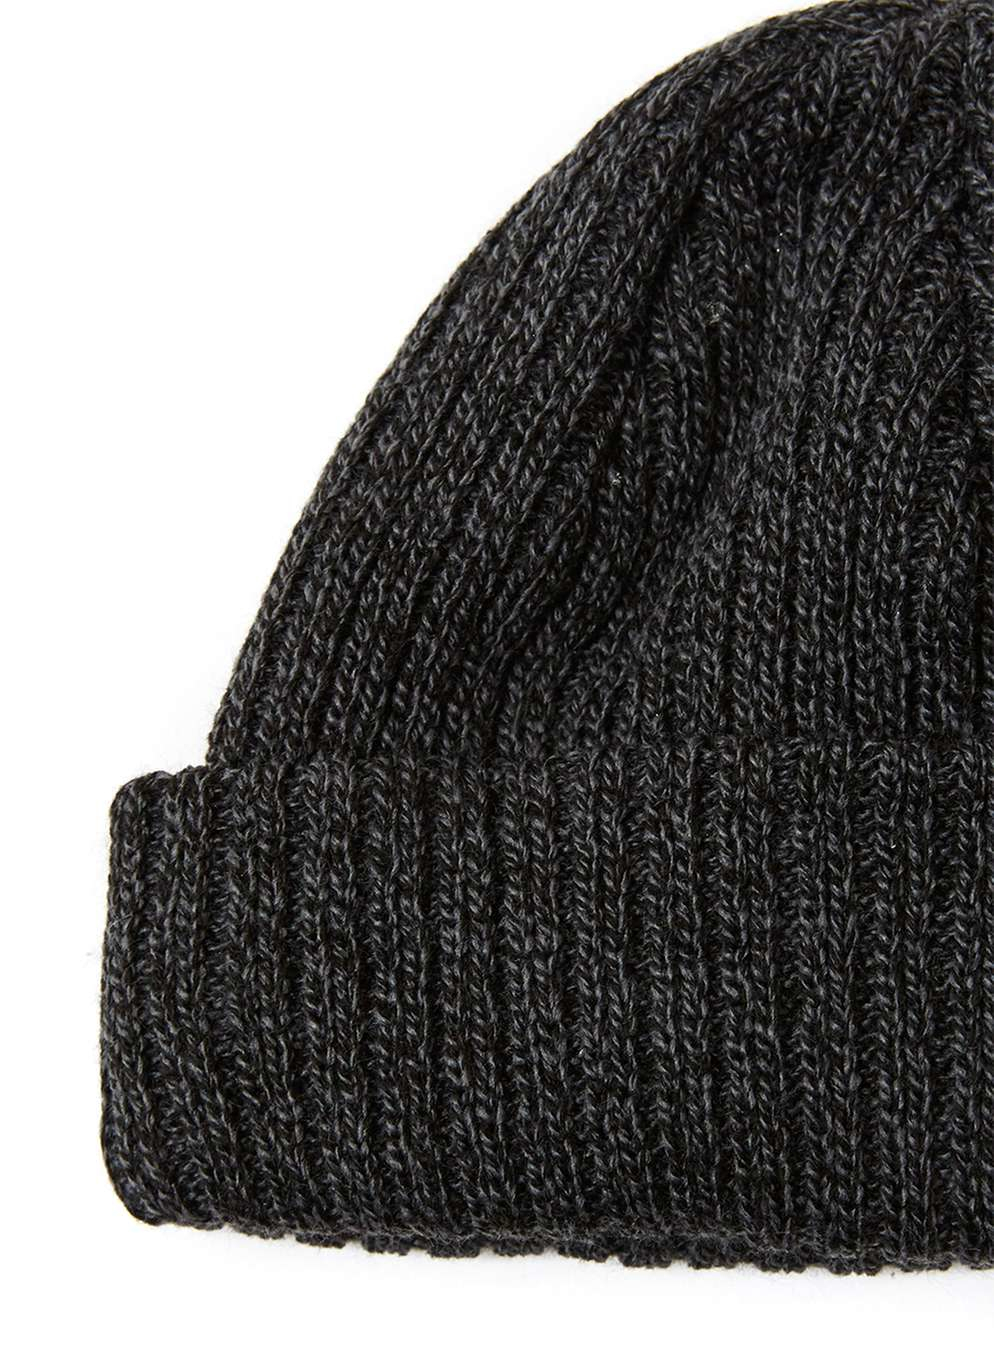 a88d5c59e44 Lyst - Topman Blue And Black Twist Mini Fit Beanie Hat in Black for Men